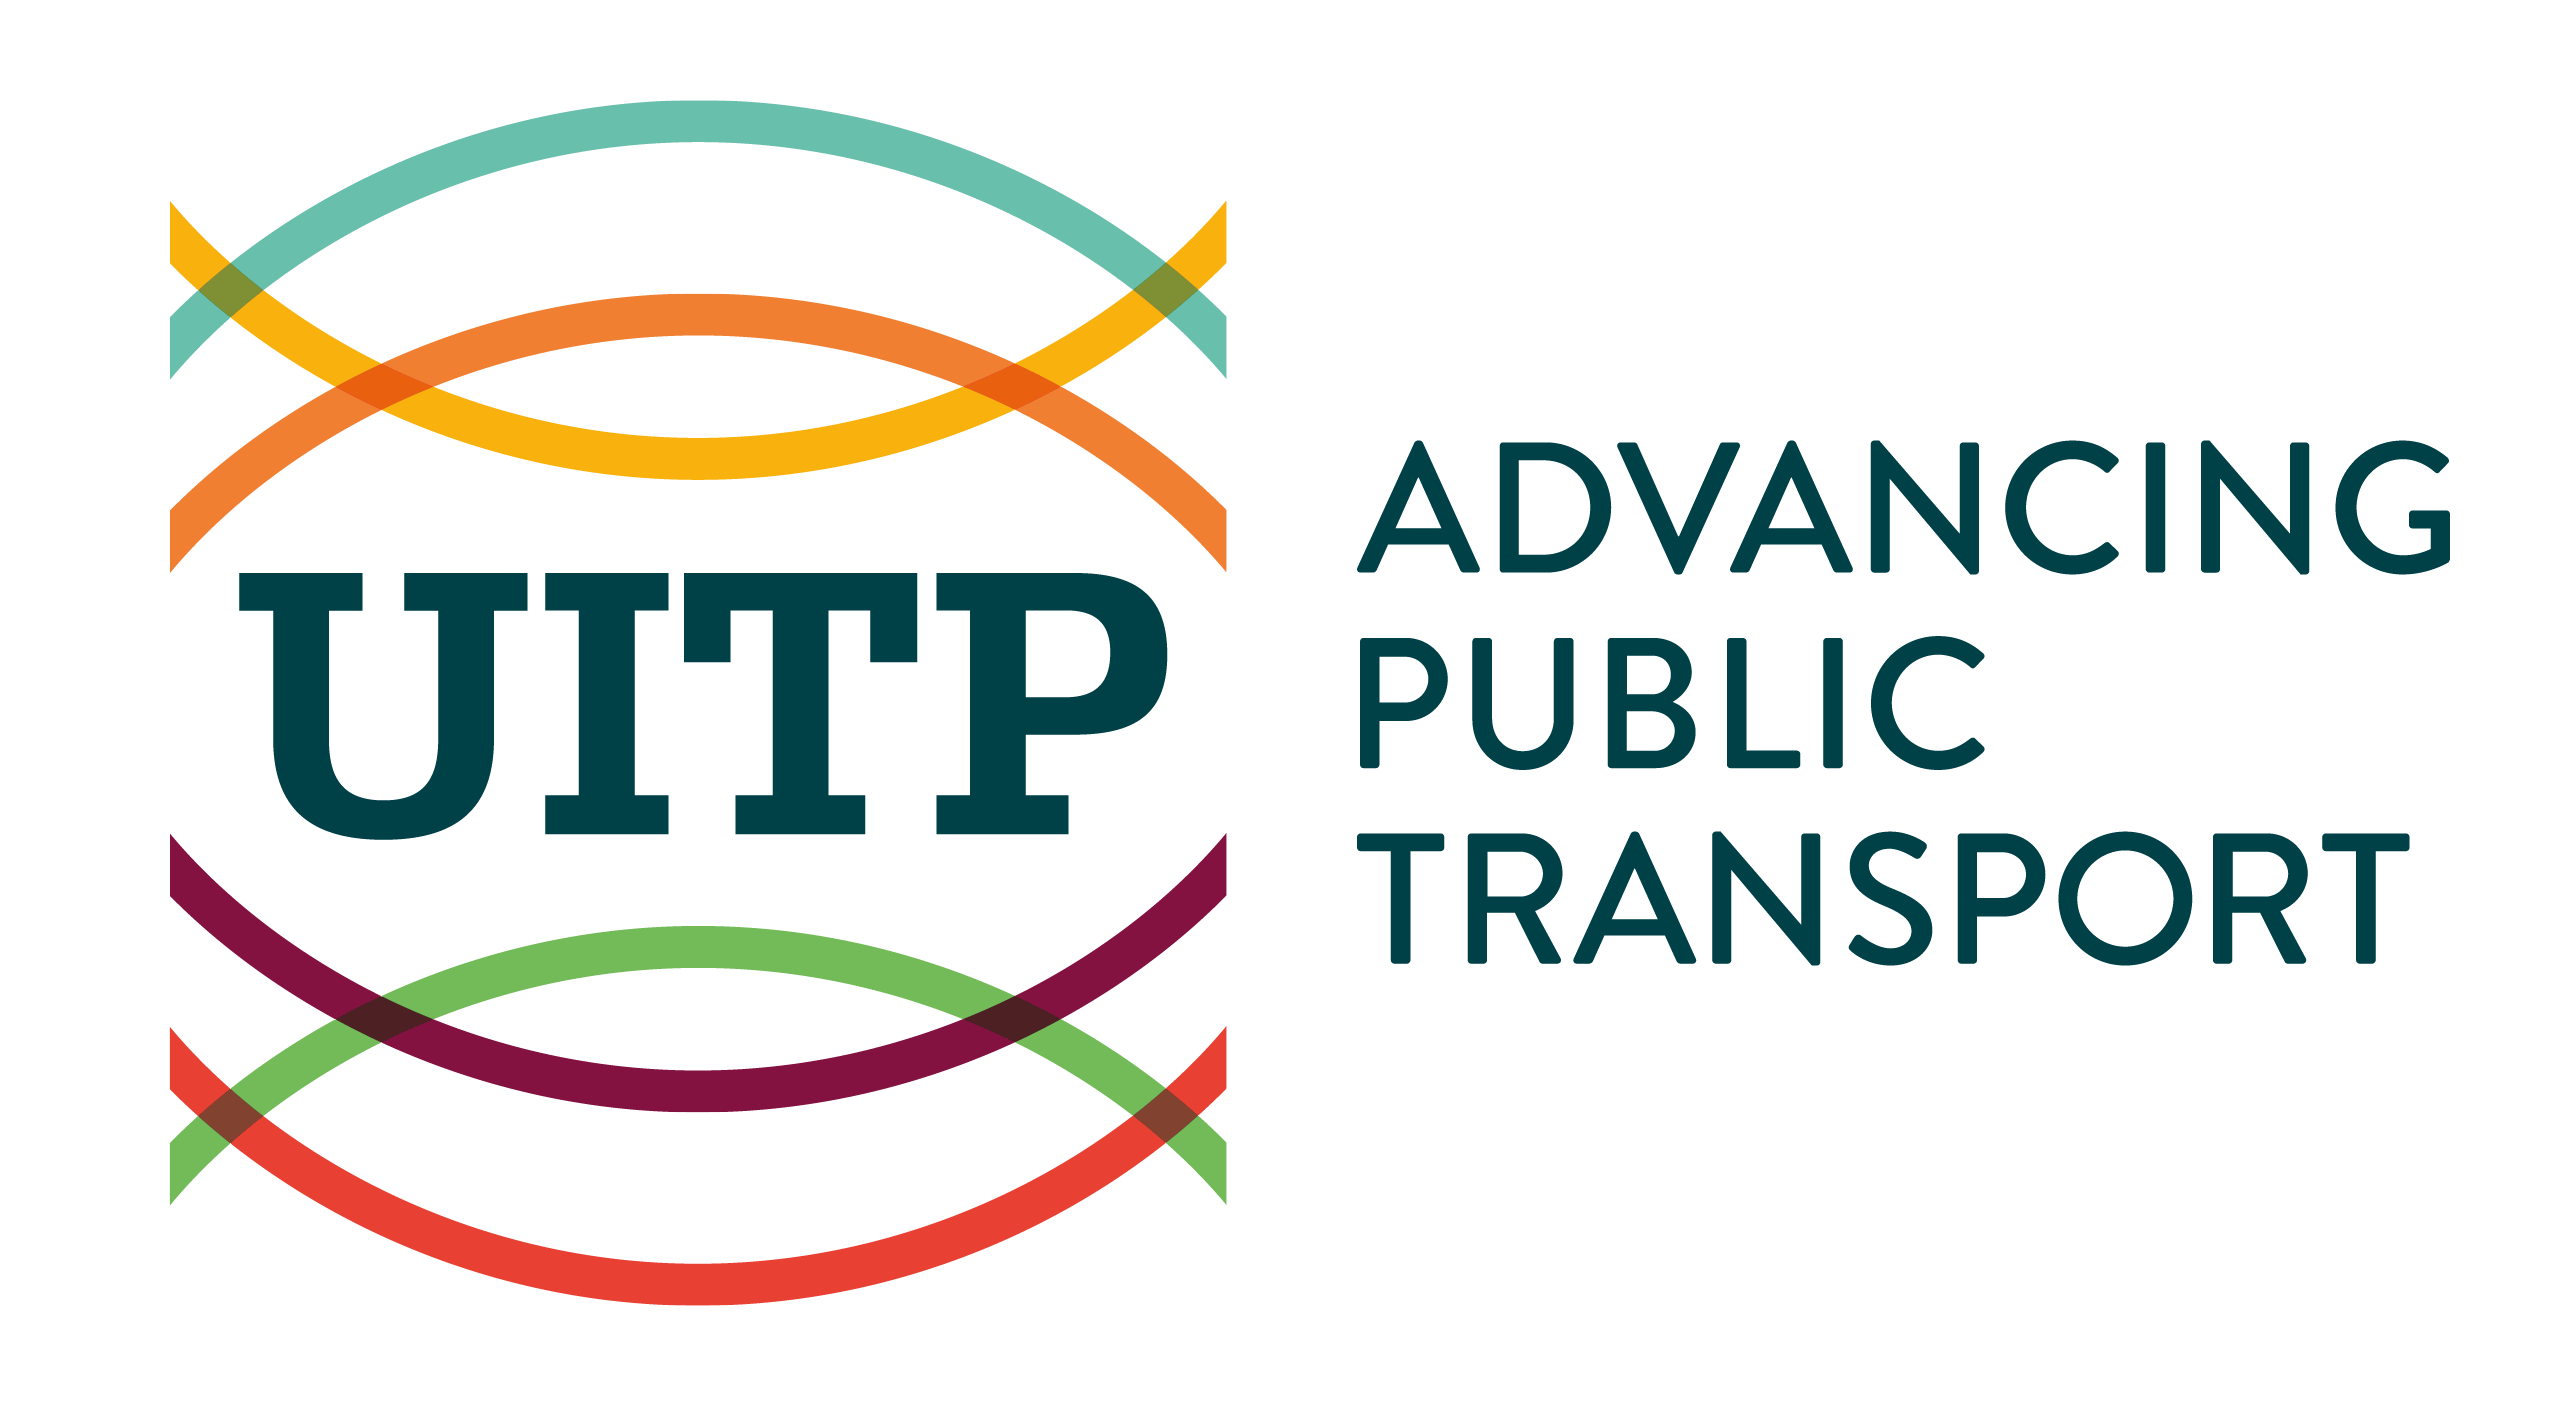 UITP International Association of Public Transport